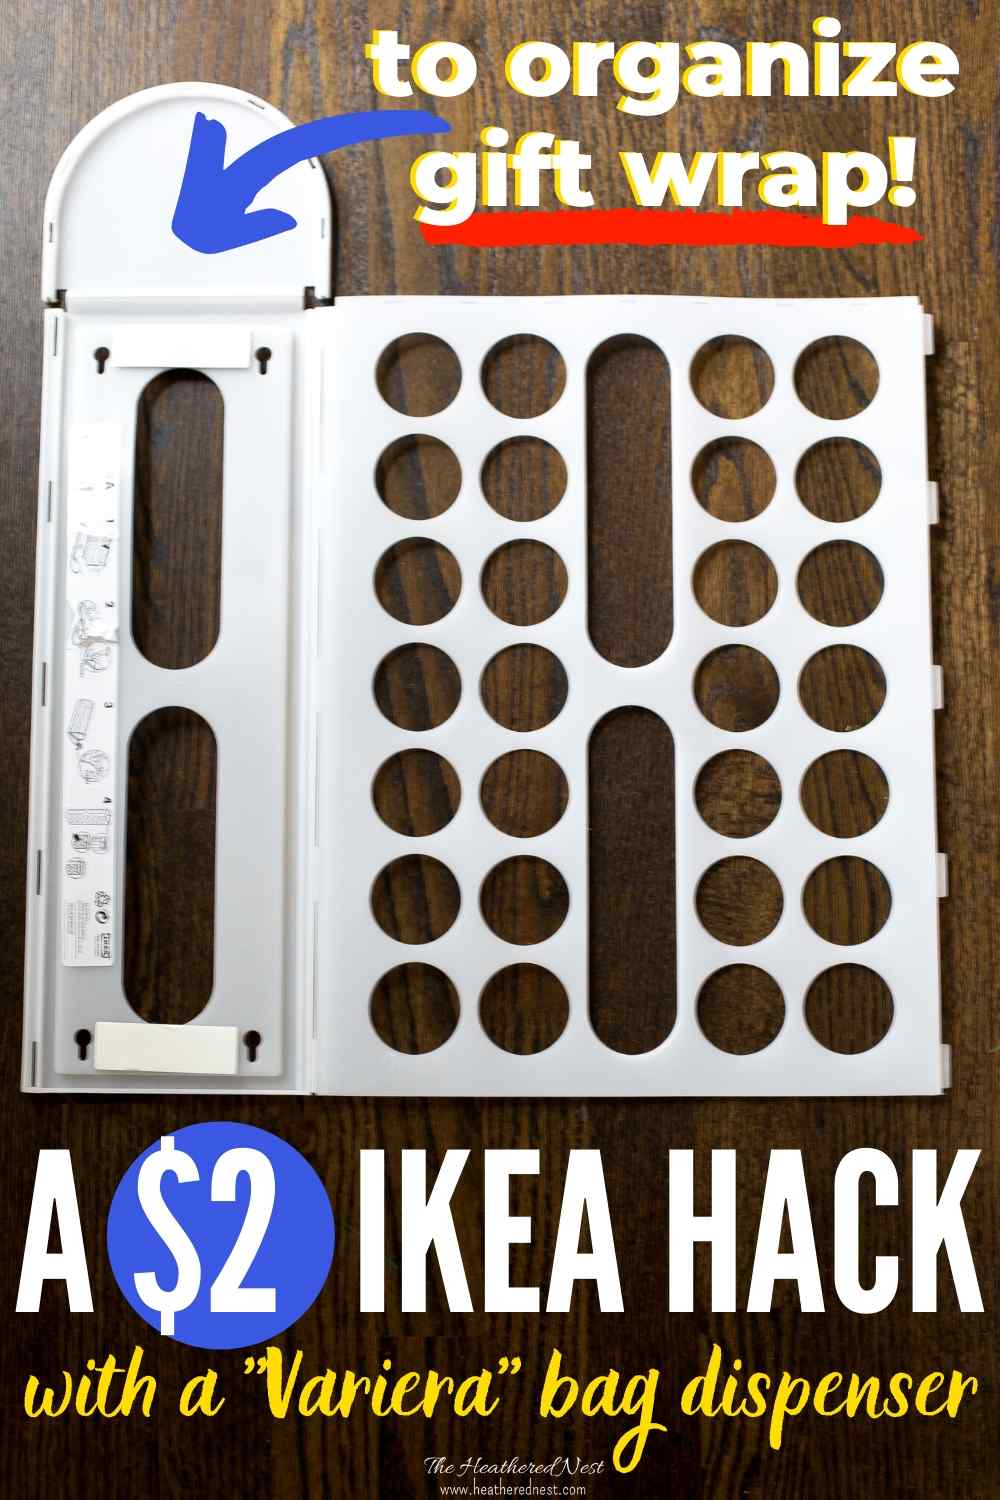 Make this easy wrap organizer in less than 5 minutes, for $2! Cool IKEA hack using a Variera plastic bag dispenser!